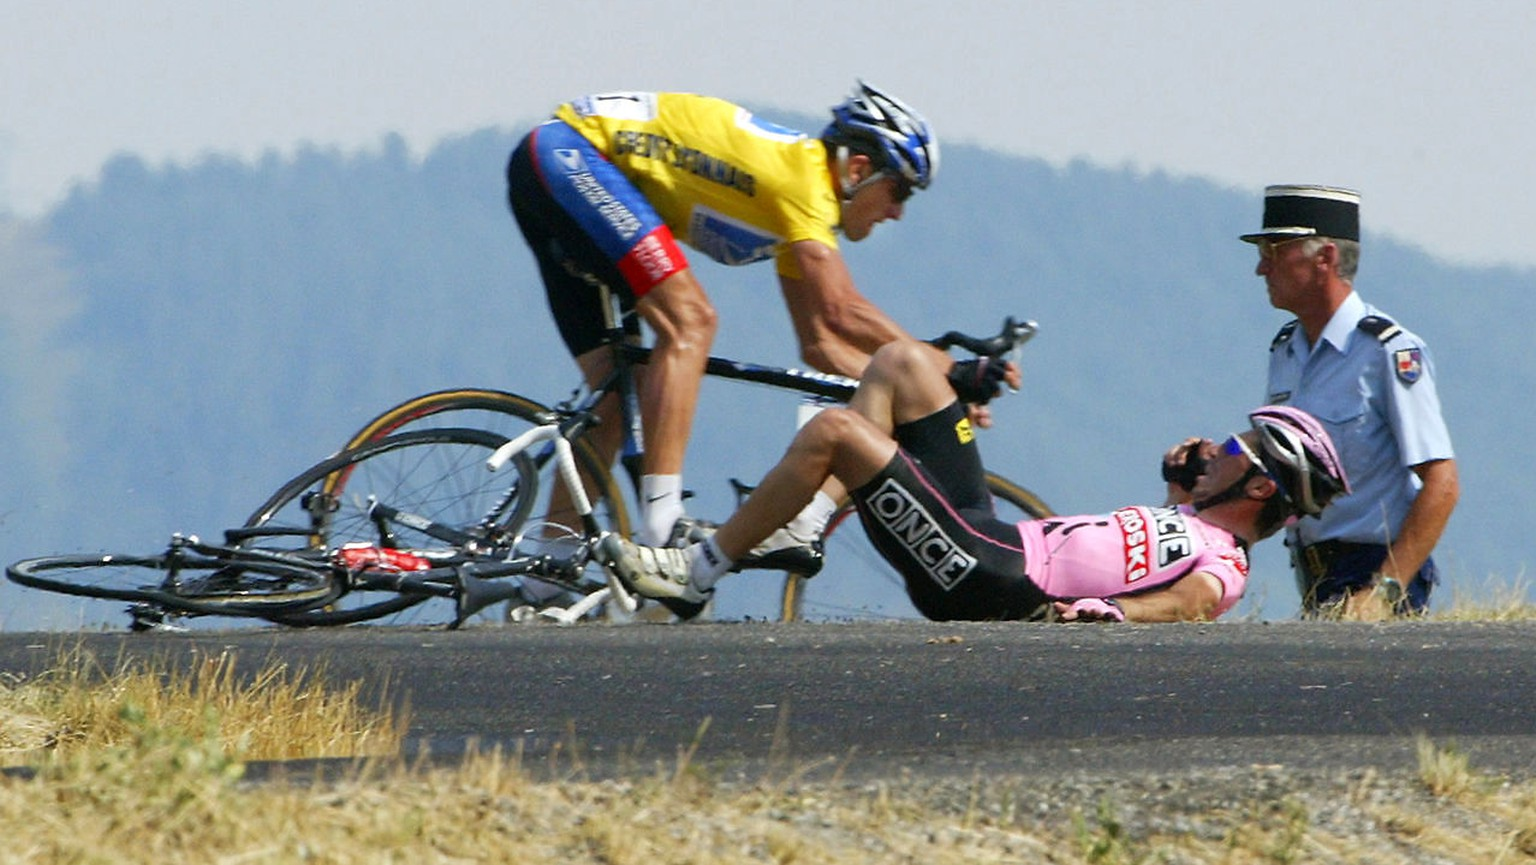 US Lance Armstrong (US Postal/USA) avoids Spaniard Joseba Beloki (ONCE/Spa) who fell down at the end of the ninth stage of the 90th Tour de France cycling race between Bourg d ´Oisans and Gap, 14 July 2003. AFP PHOTO JOEL SAGET